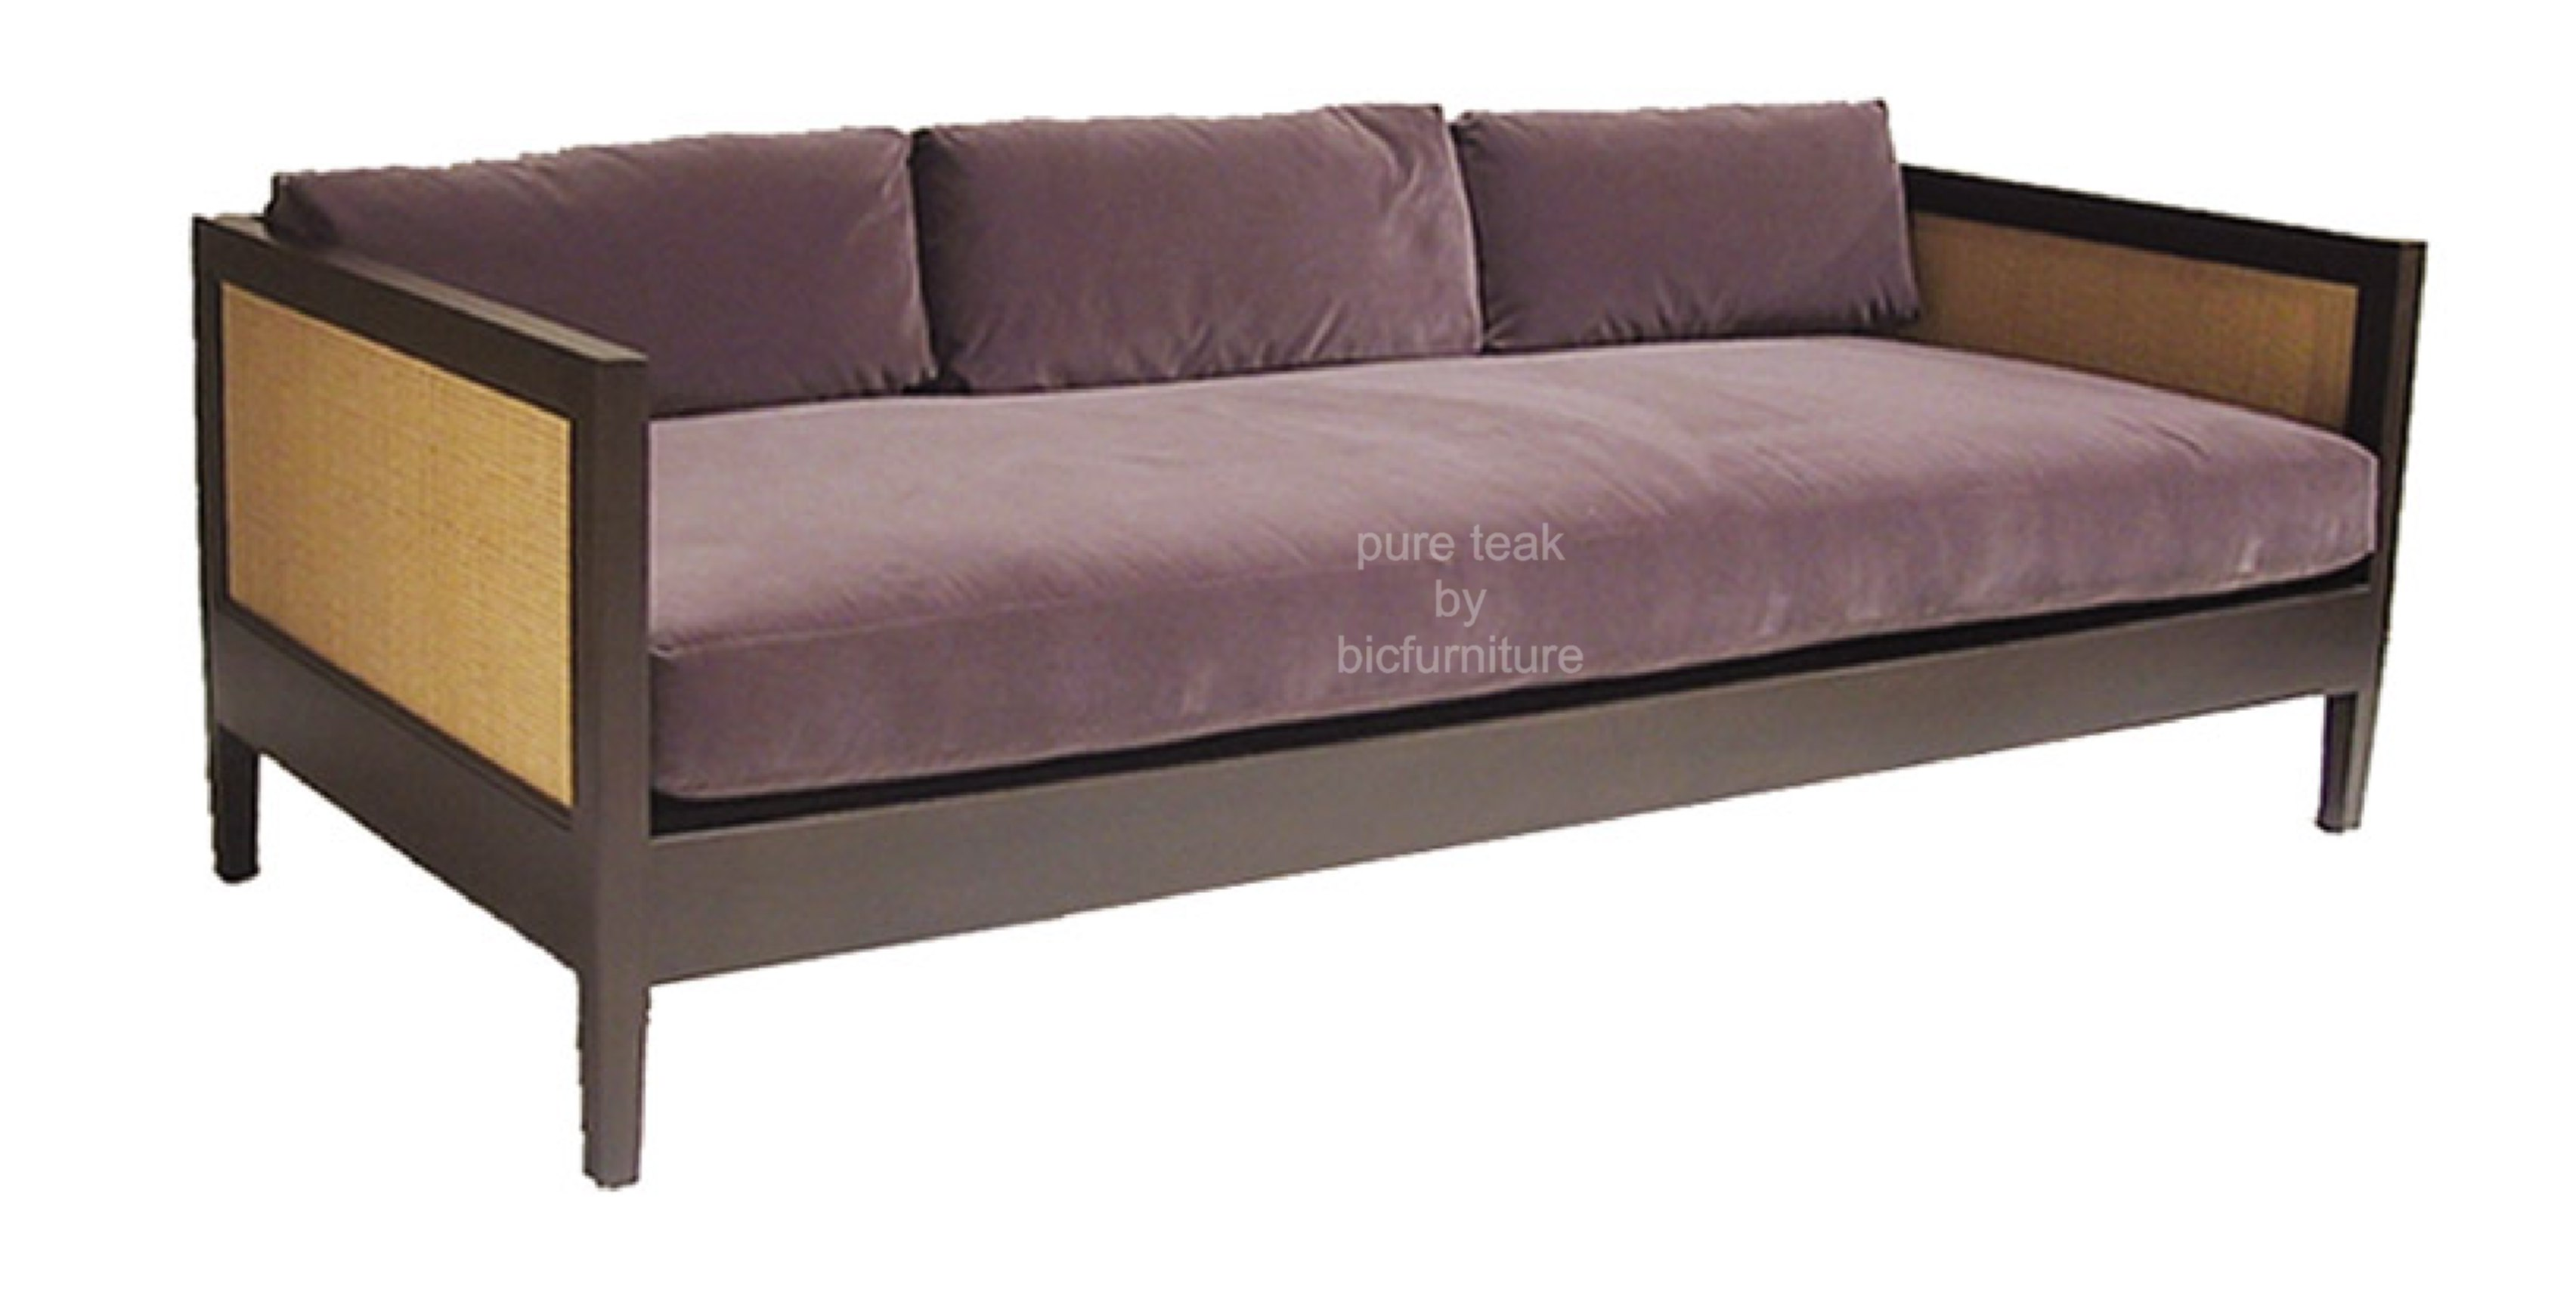 Marvelous photograph of Comfortable teakwood day bed with cane within handles with #8D6D3E color and 3408x1731 pixels